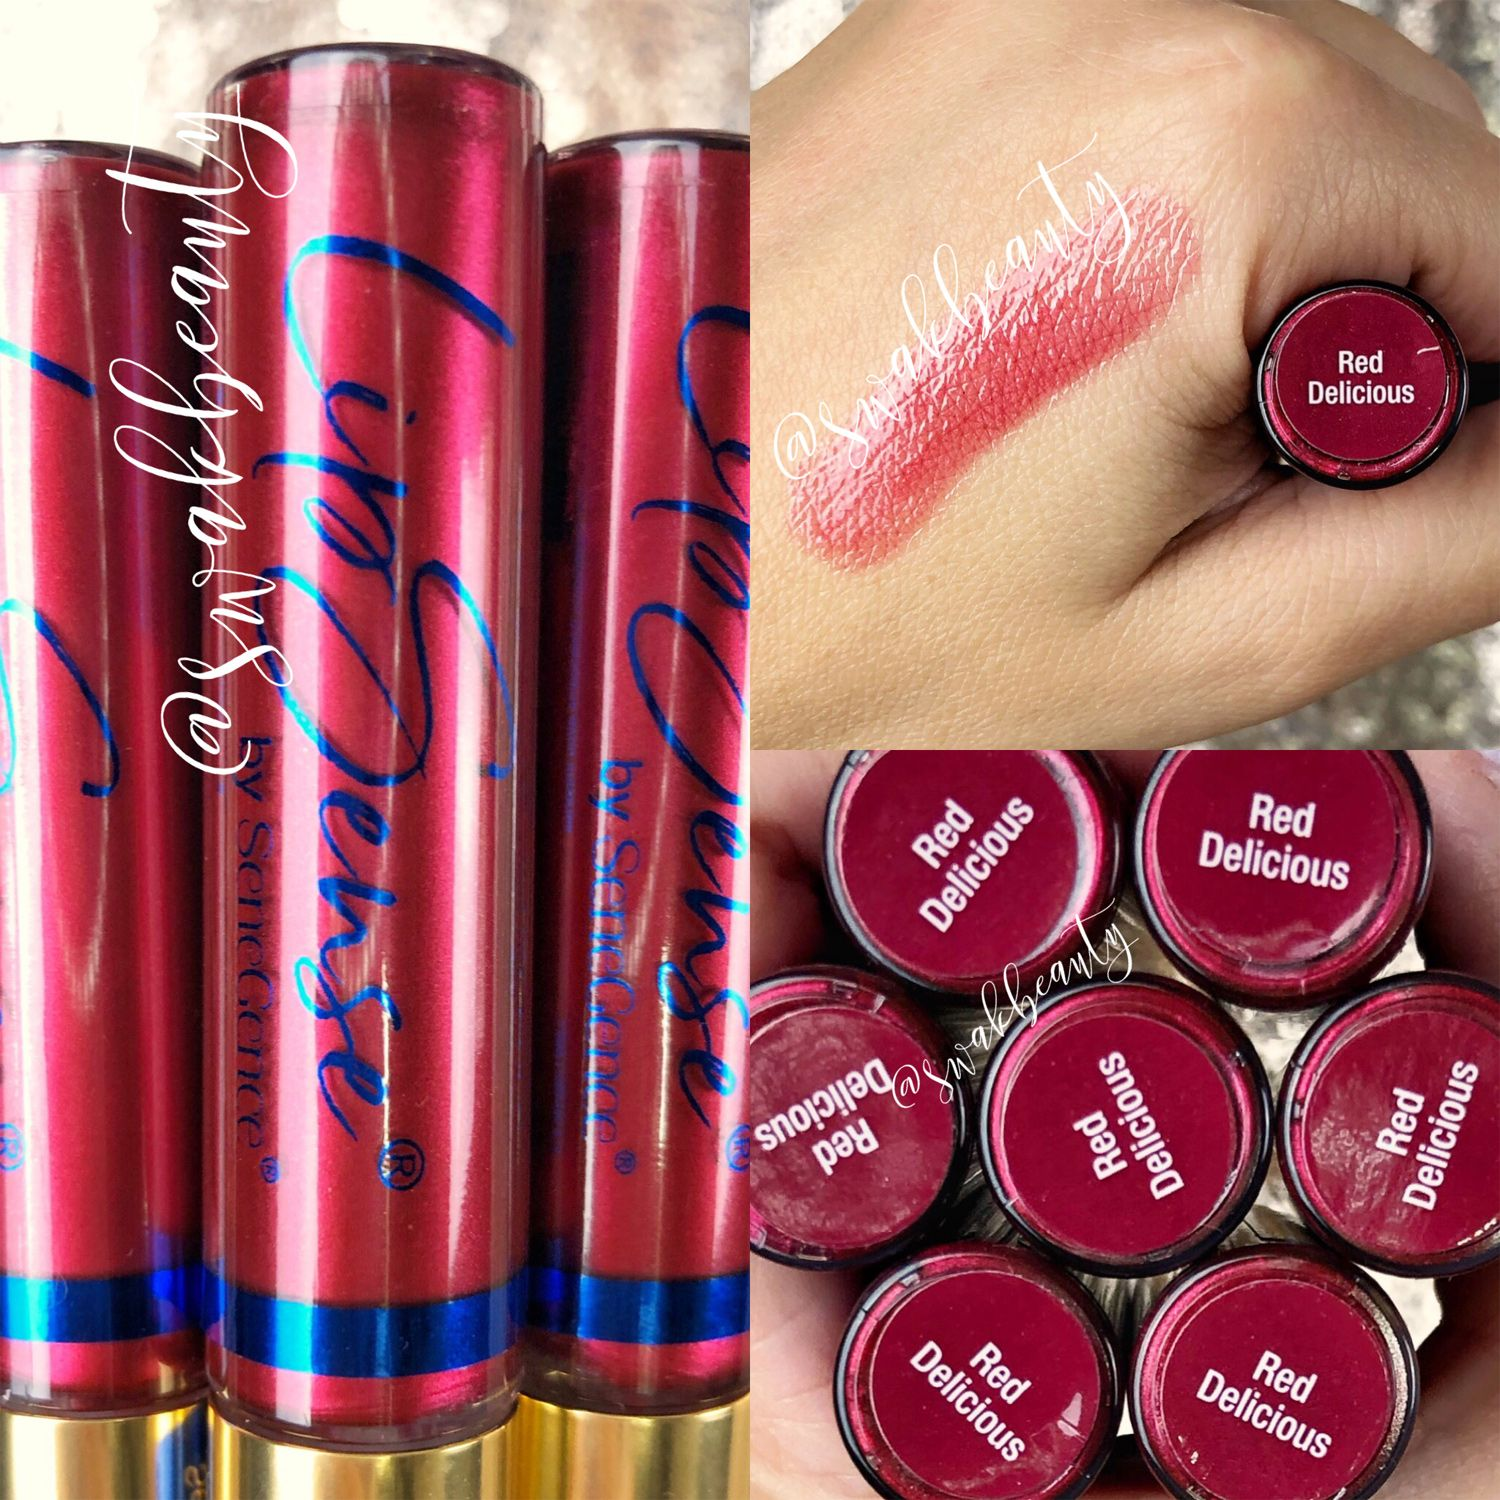 Lipsense Red Delicious Gloss Limited Edition In 2020 Red